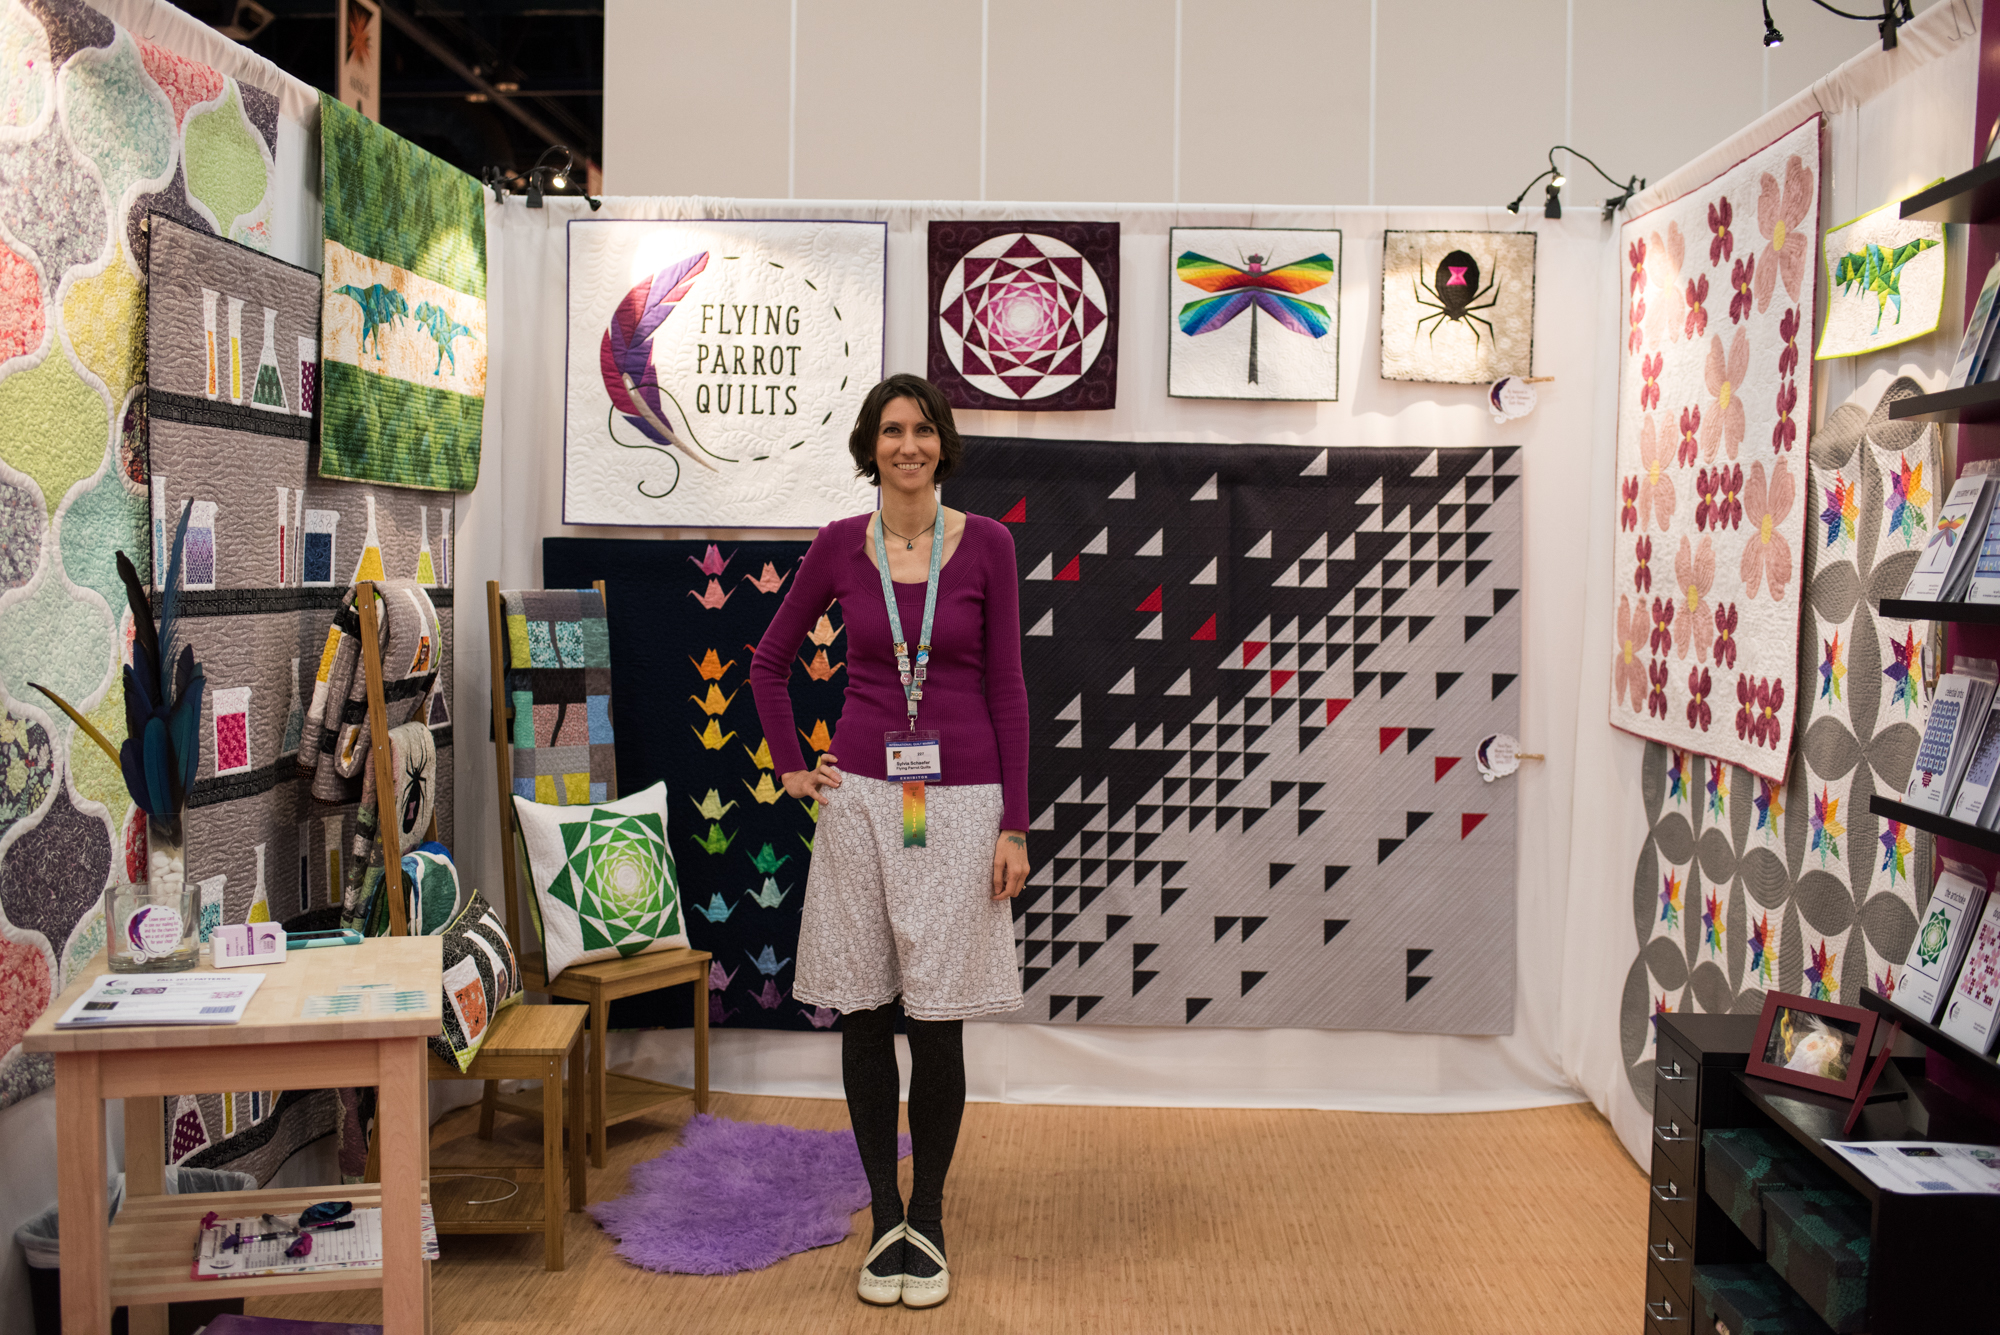 Sylvia Schaefer in her Quilt Market Booth